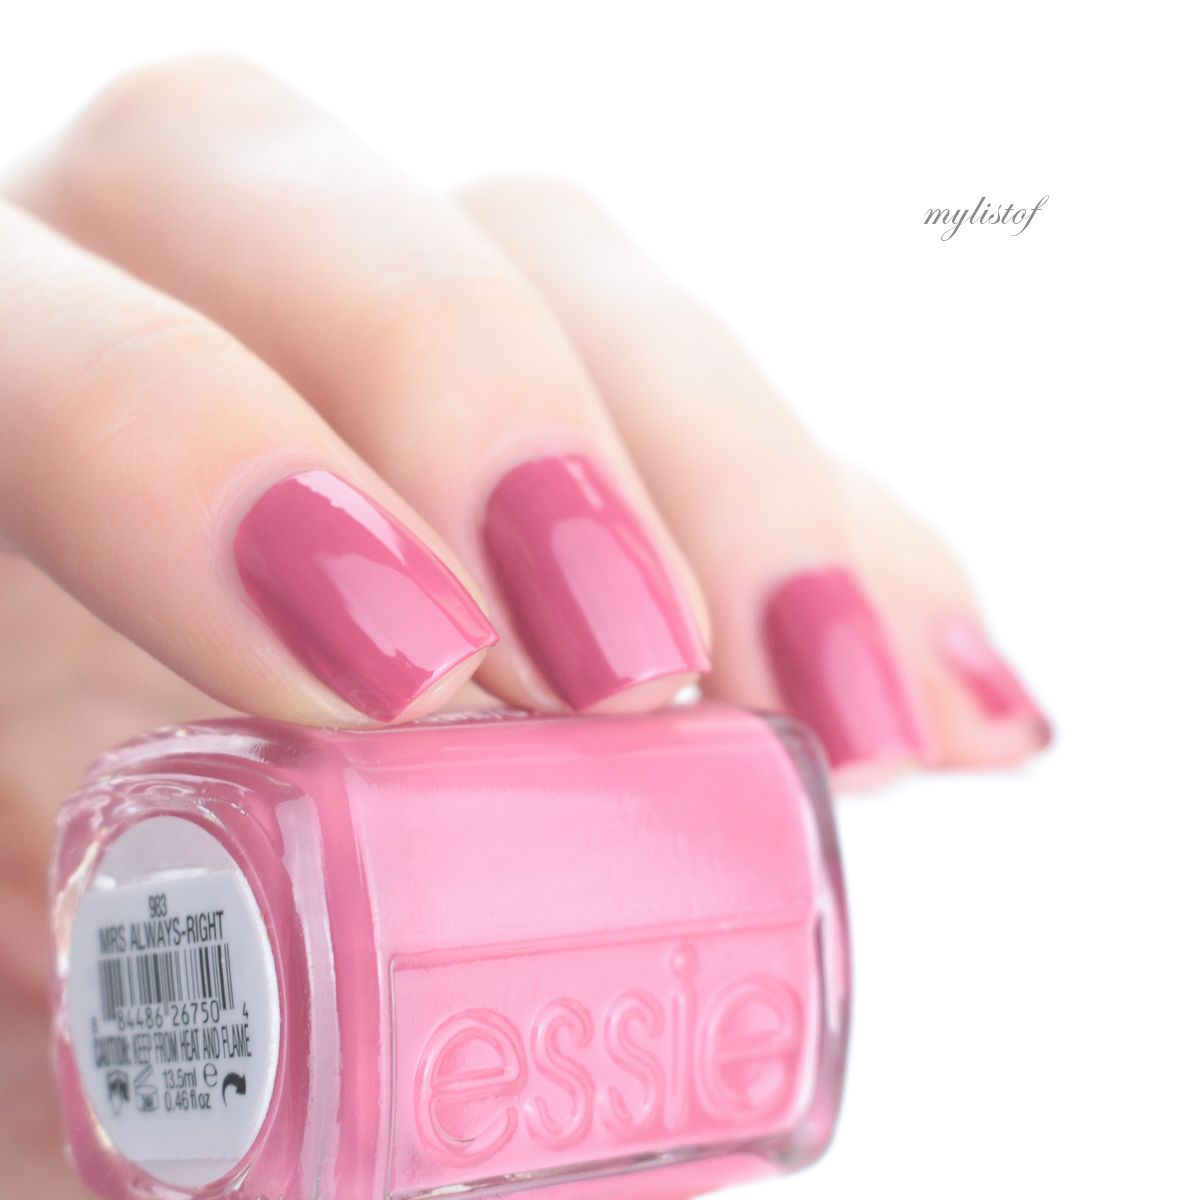 Essie, Nagellack, Swatch, Review, Pink, apricot, sheer, Creme ...